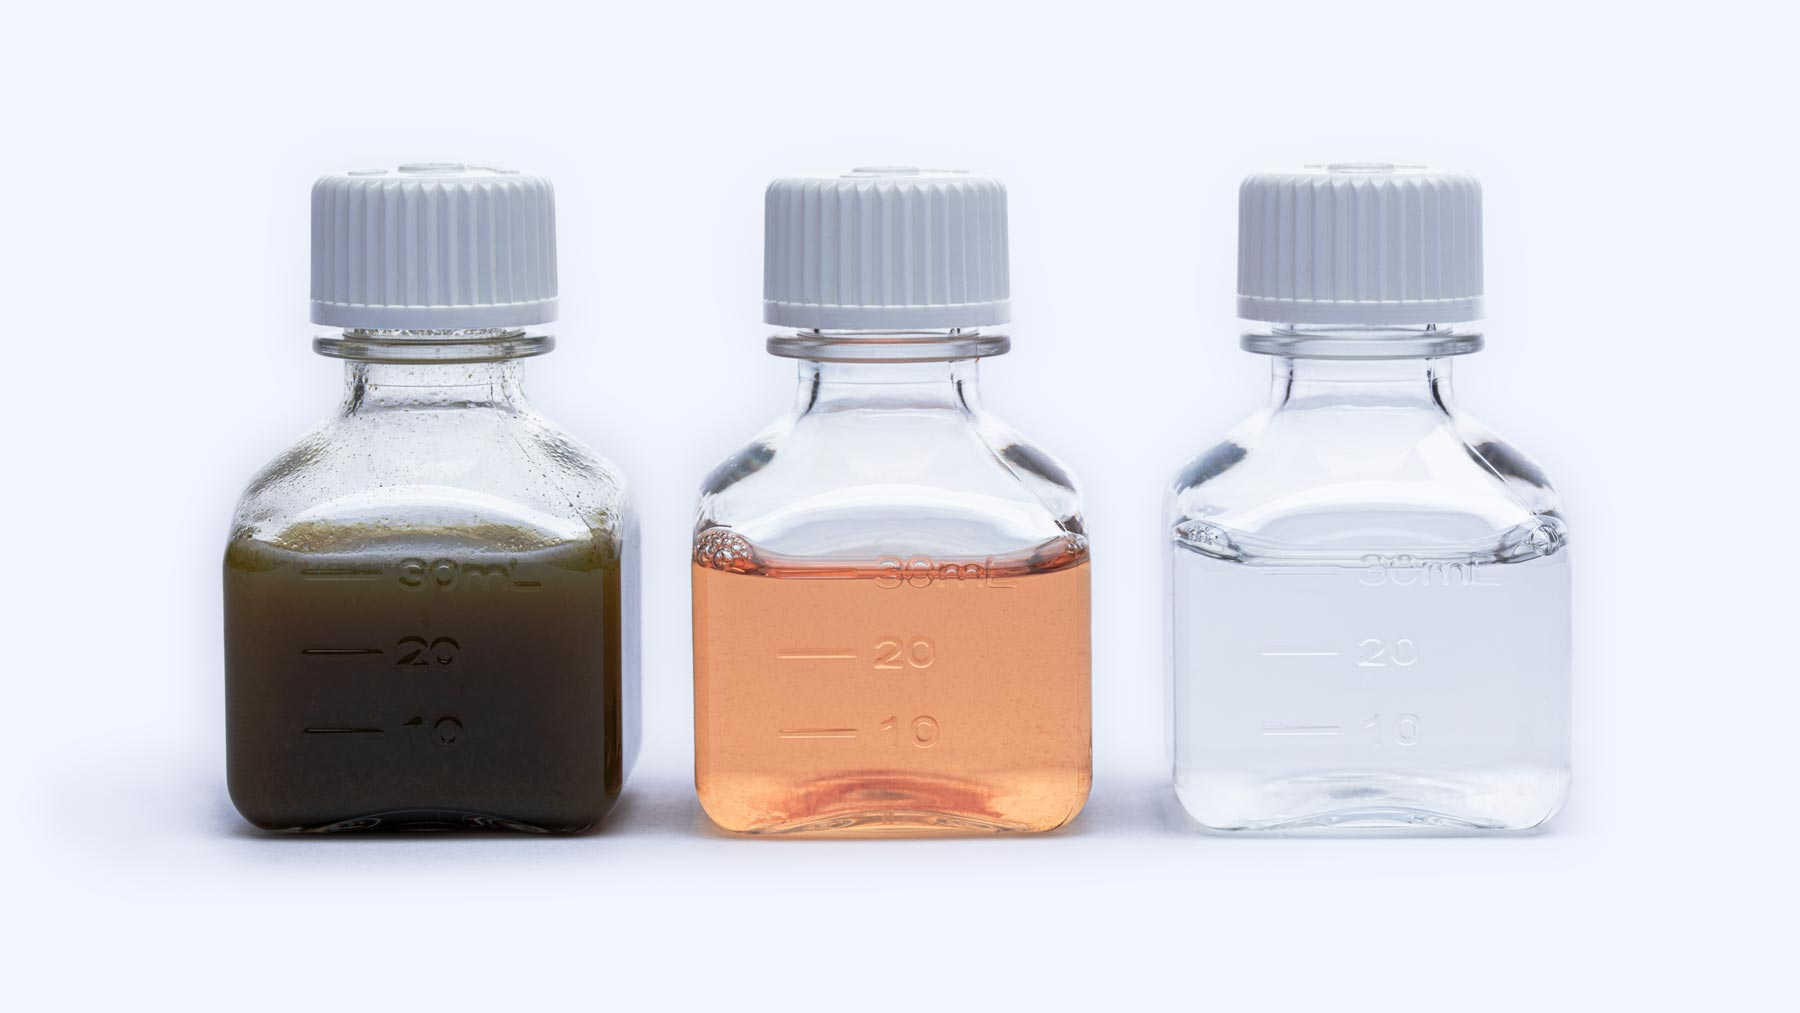 Intrinsic Factor 3 stages of extraction and purification  shown in 3 separate glass bottles.